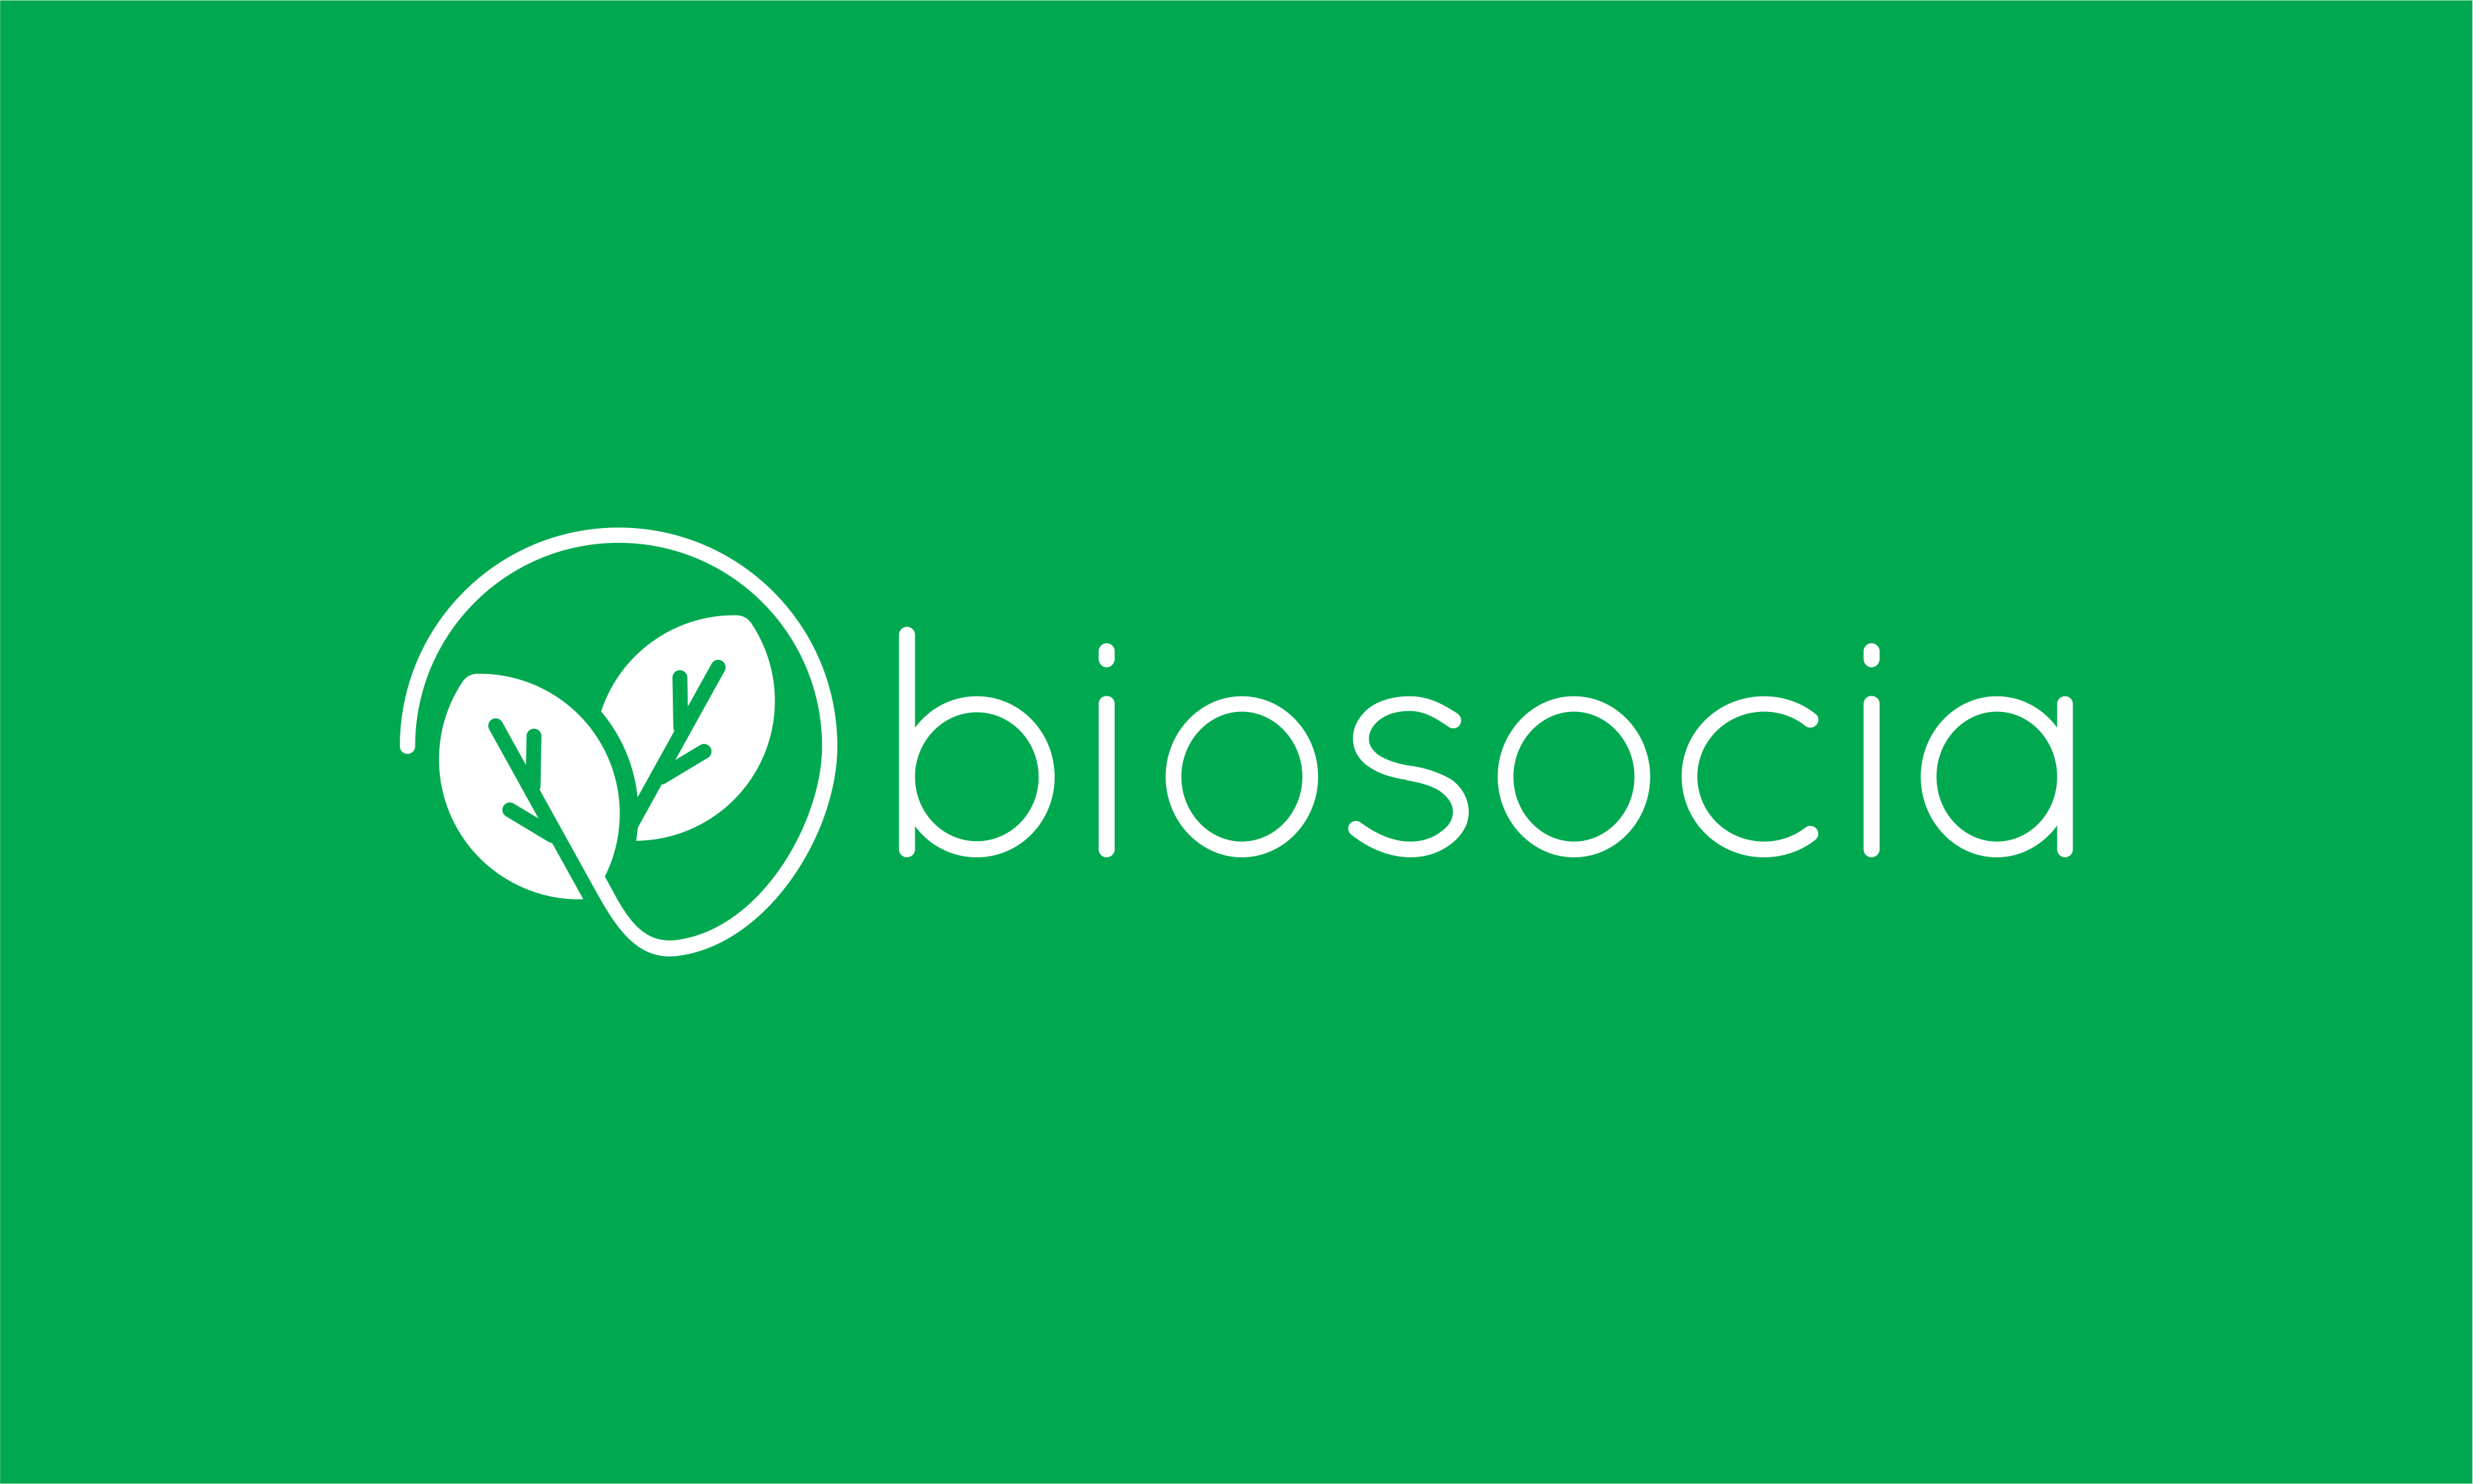 Biosocia - Retail brand name for sale